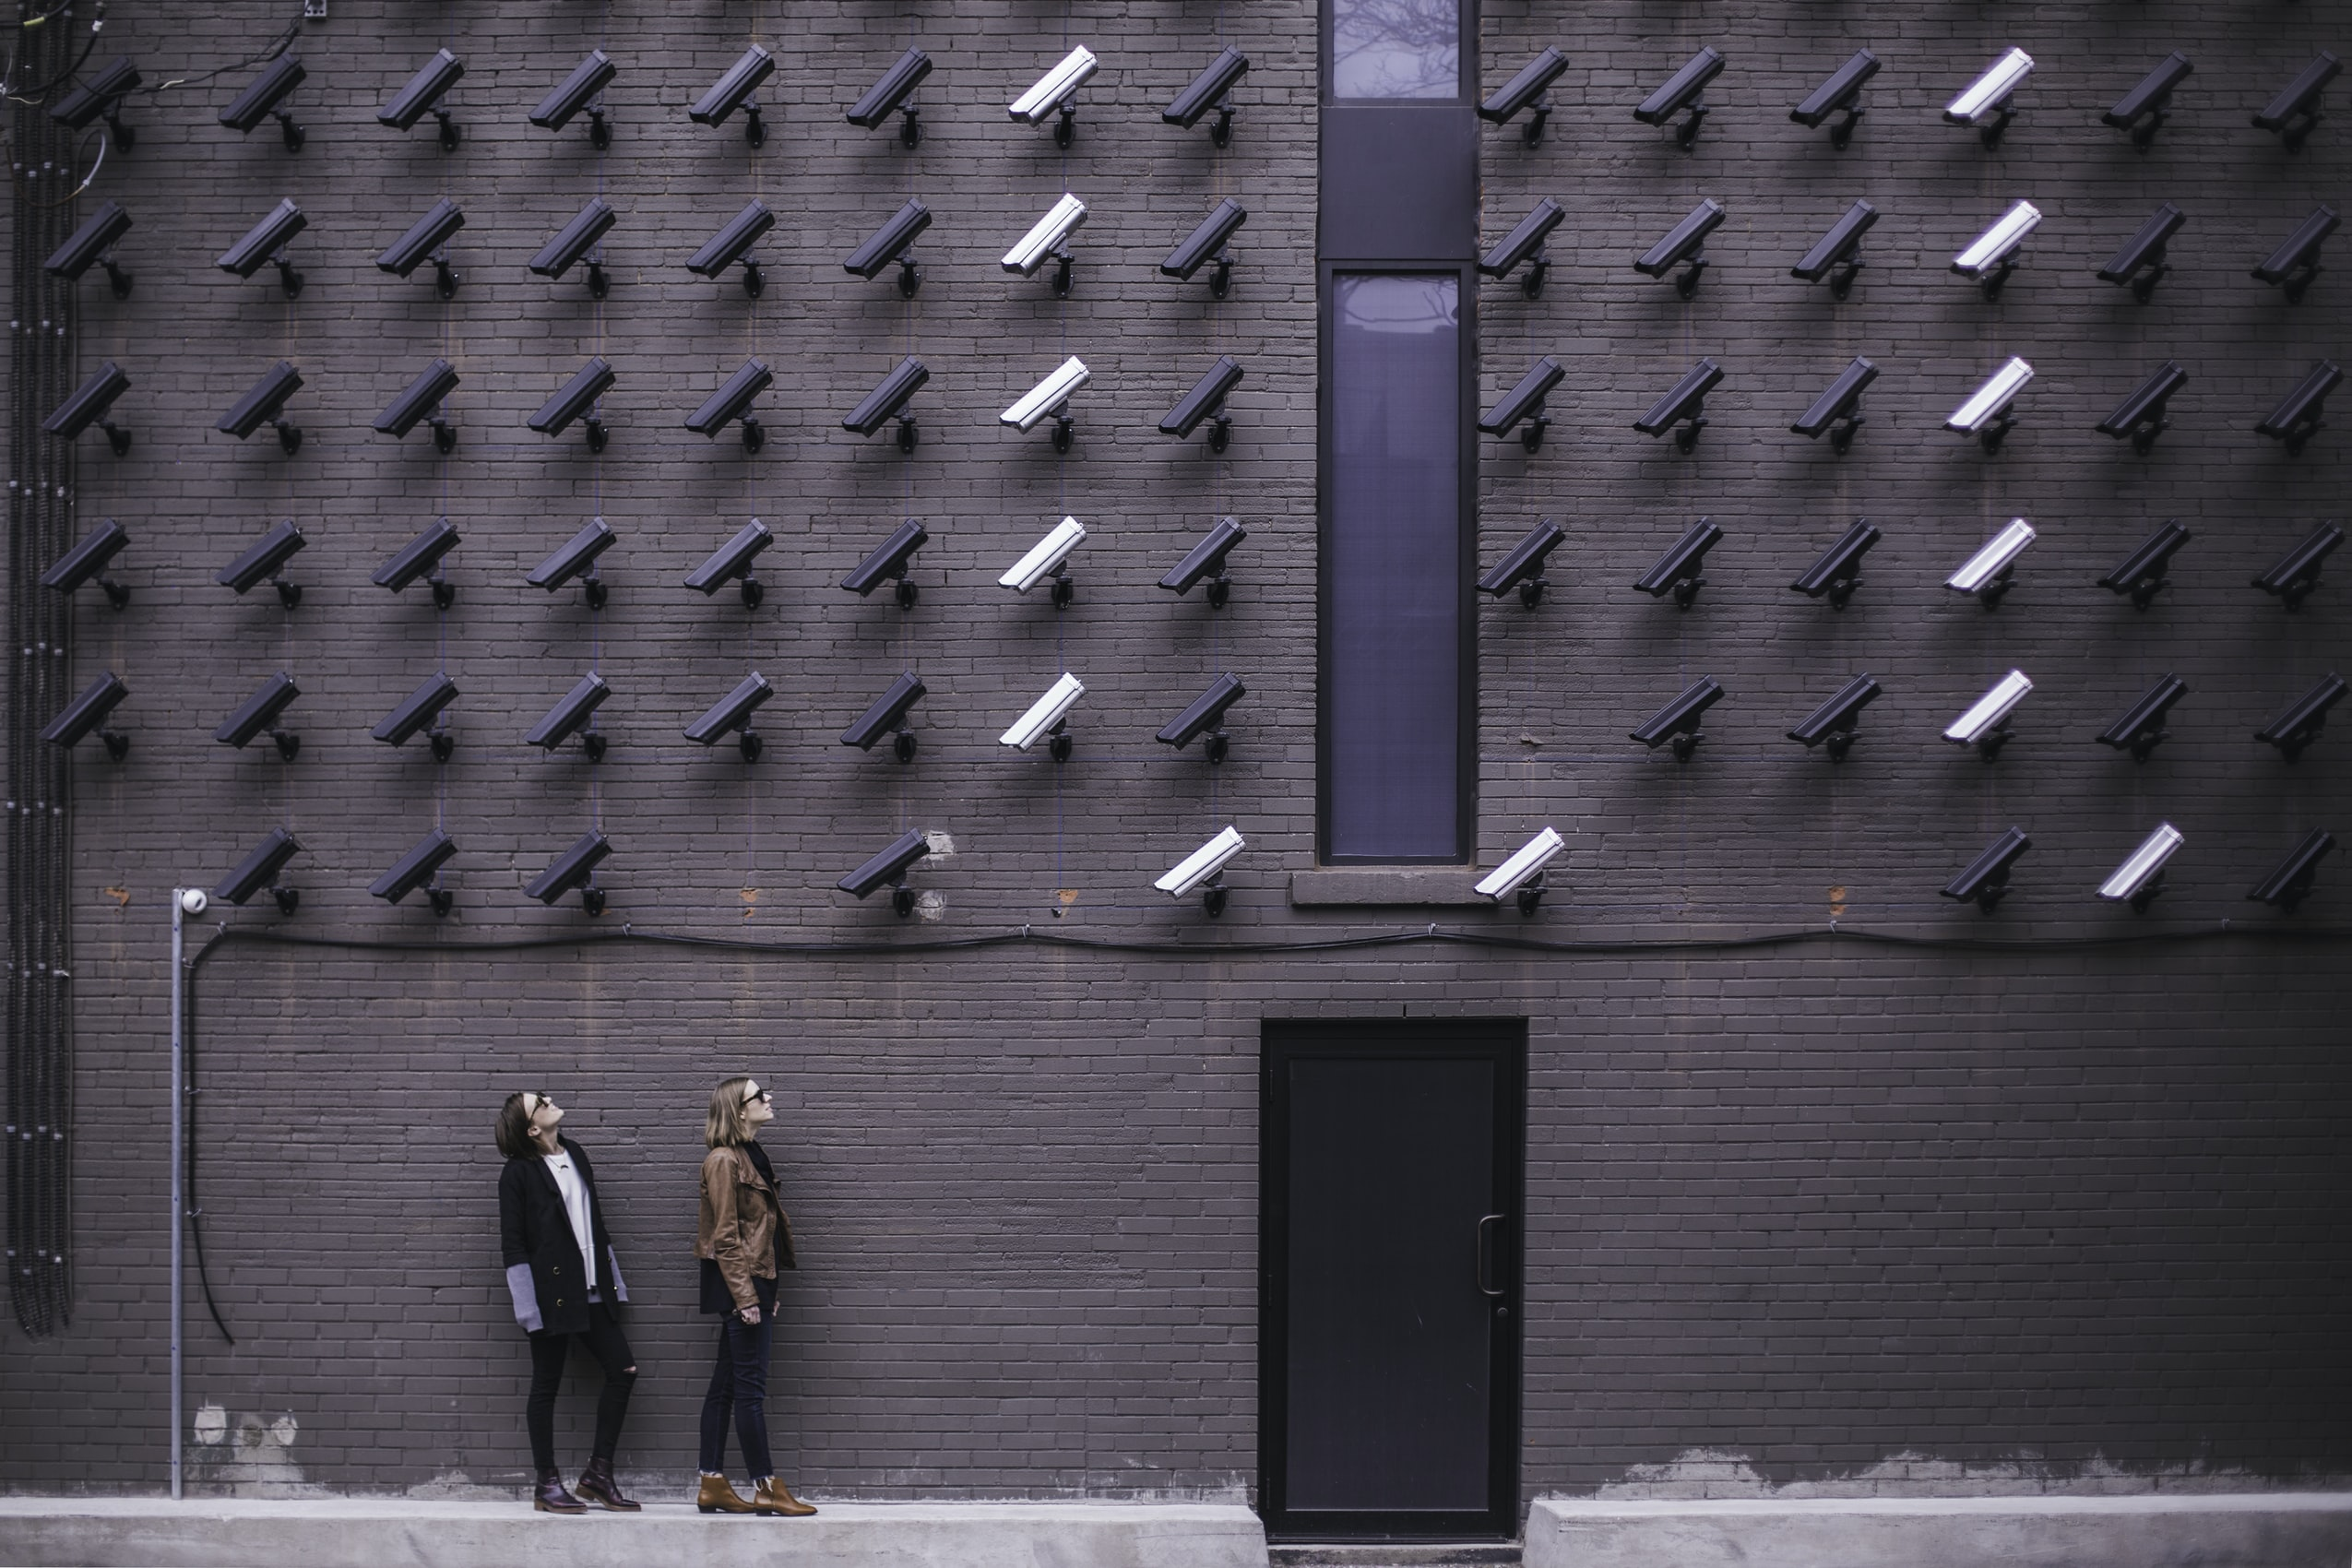 A wall of CCTA cameras watching two women, by Matthew Henry